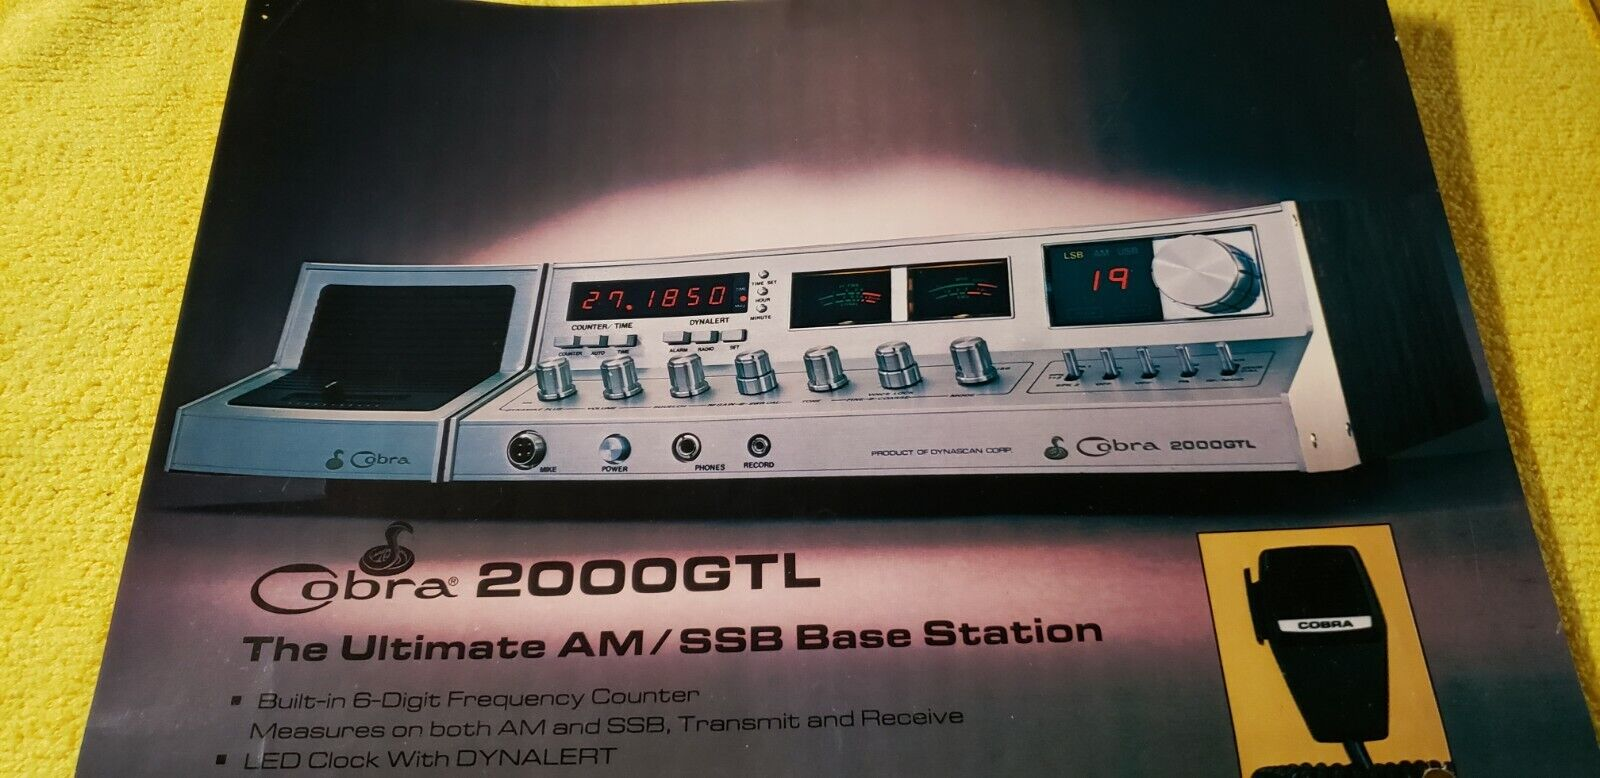 🐍COBRA 2000GTL AM/SSB IN BOX*UNIQUE  UPDATES*TUG9 ASTATIC*BEAUTIFUL QUALITY . Available Now for 1400.00